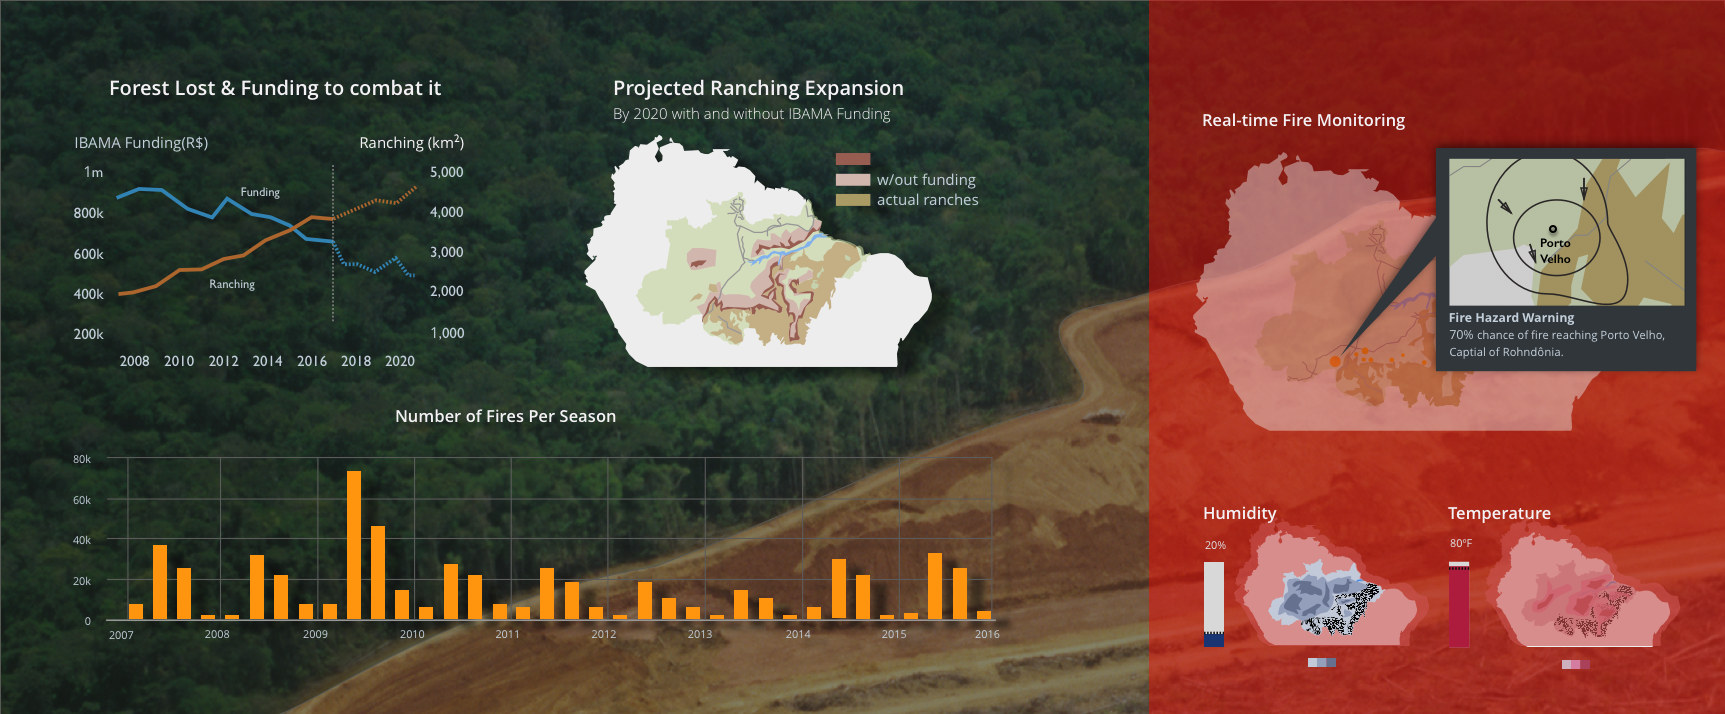 Protecting the Forest  |  Data Viz  -   Visualizing the adverse effects of ranching on deforestation and wildfires in an ambient dashboard.   Learn More